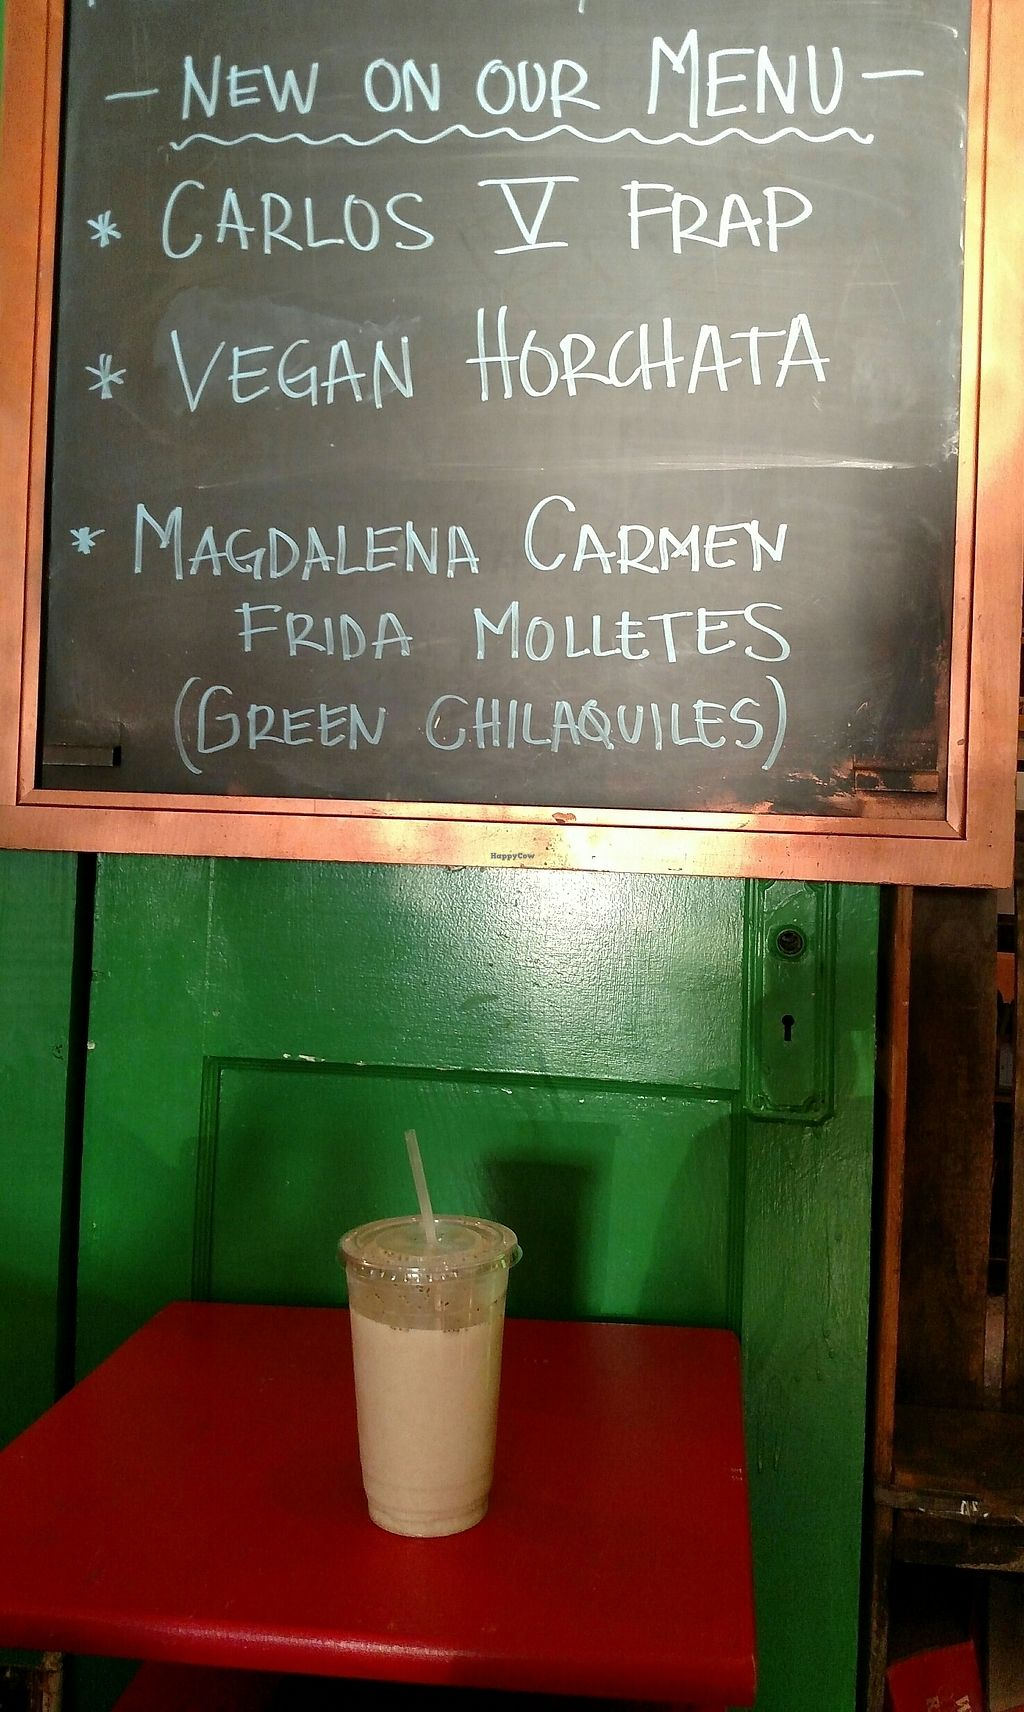 """Photo of Frida's Cafe  by <a href=""""/members/profile/RosieTheVegan"""">RosieTheVegan</a> <br/>Vegan Horchata!!! <br/> August 9, 2017  - <a href='/contact/abuse/image/88806/290632'>Report</a>"""